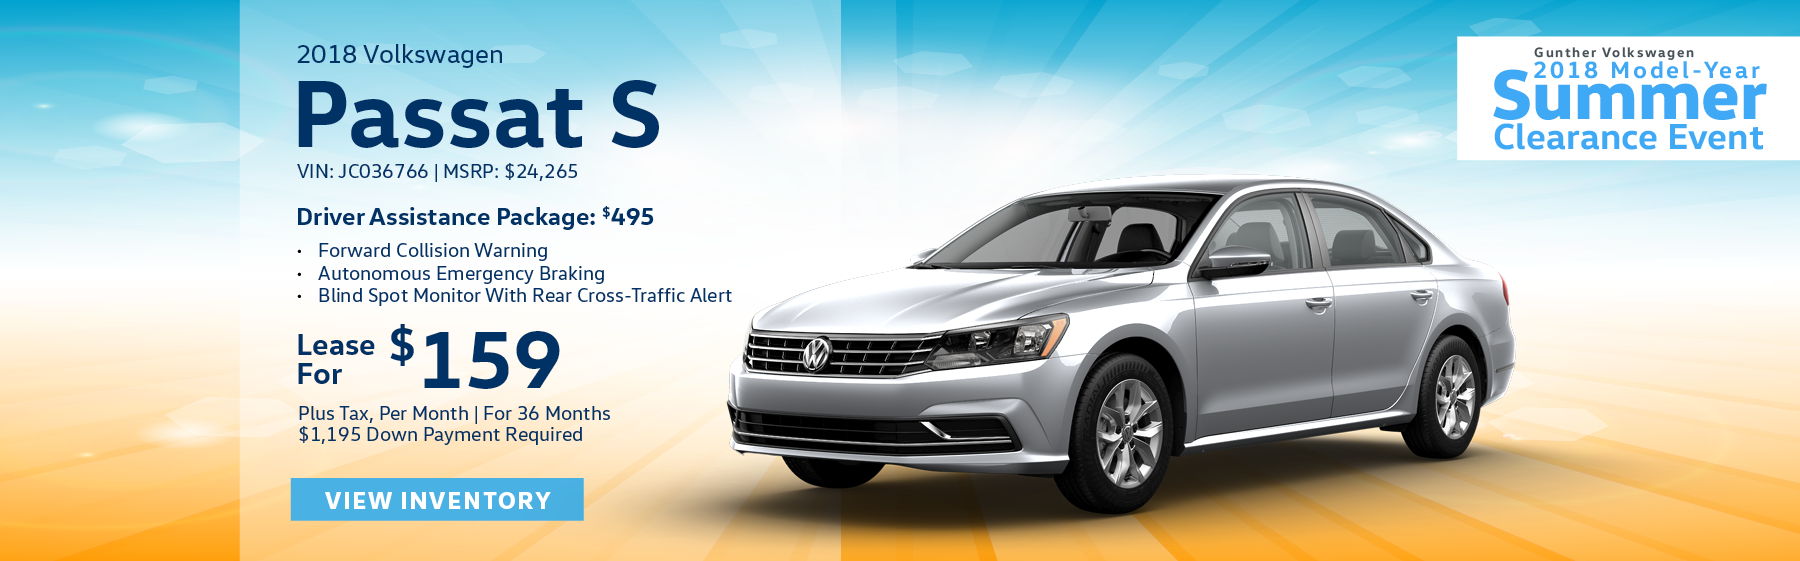 Lease the 2018 Volkswagen Passat S for $159 plus tax for 36 months. $1,995 Down payment required. $495 Driver assistance package includes forward collision warning, autonomous emergency braking, and blind spot monitor with rear cross-traffic alert.